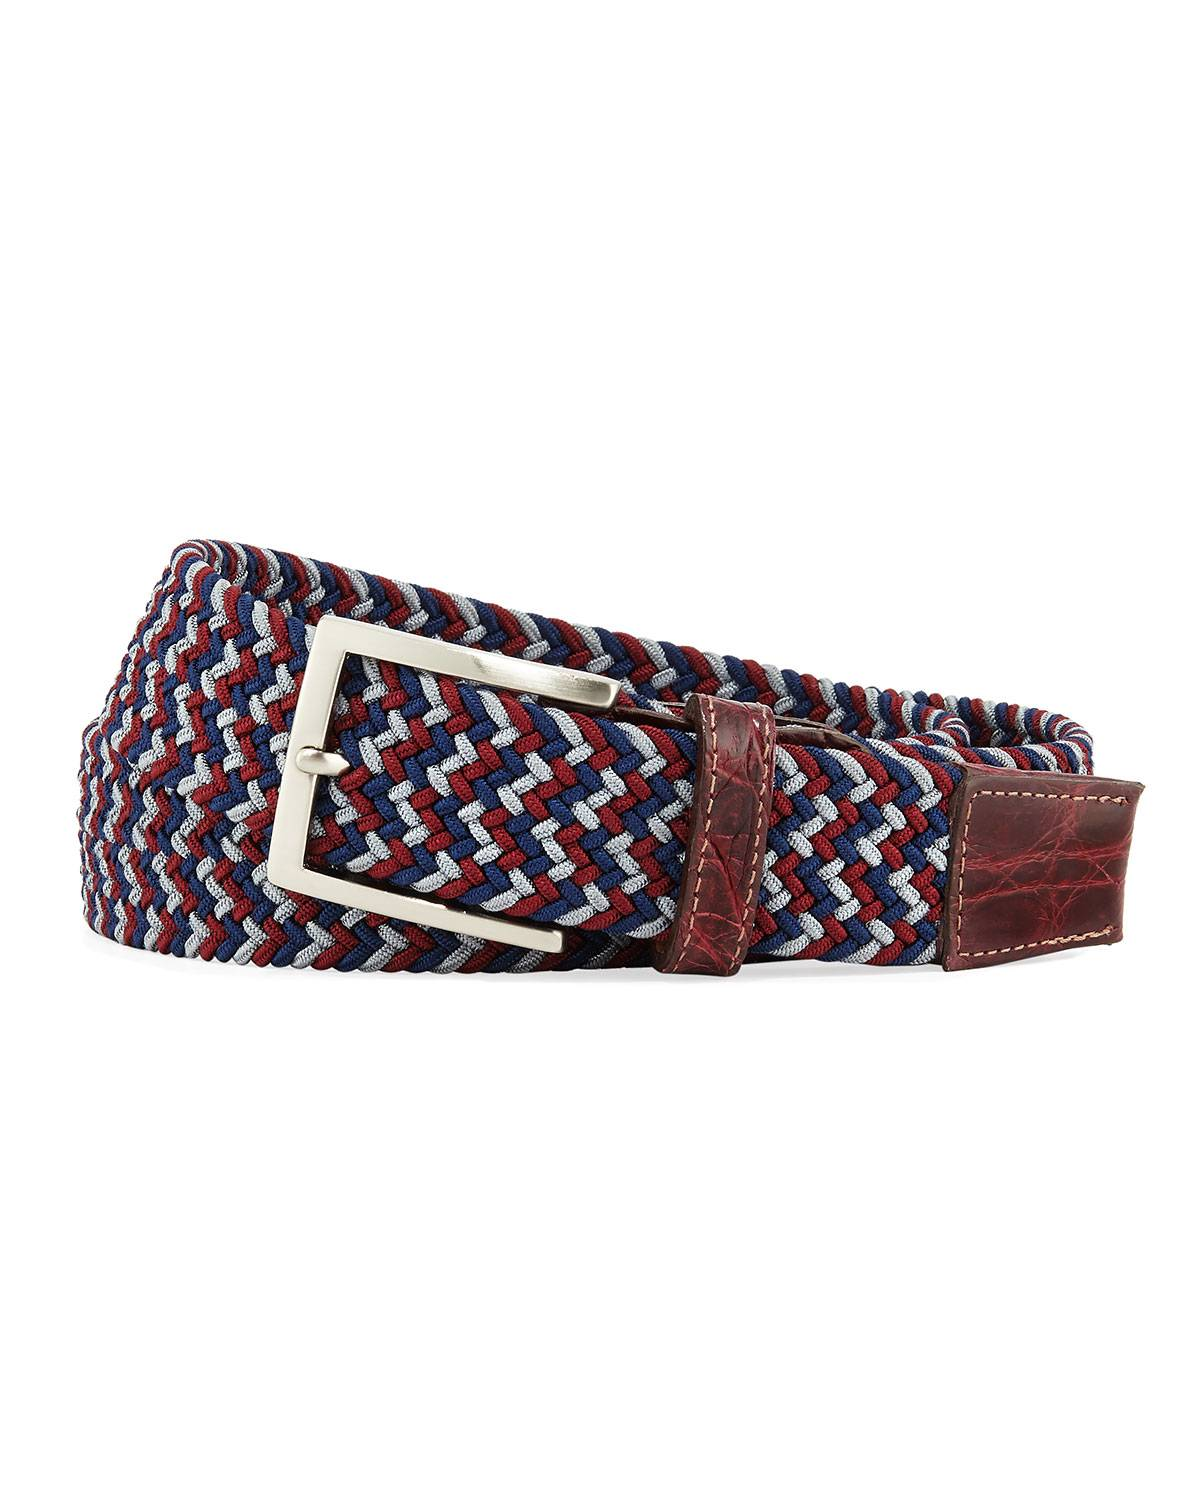 W. Kleinberg Men's Sport Stretch Belt with Crocodile-Trim, Wine - Size: 50in / 125cm